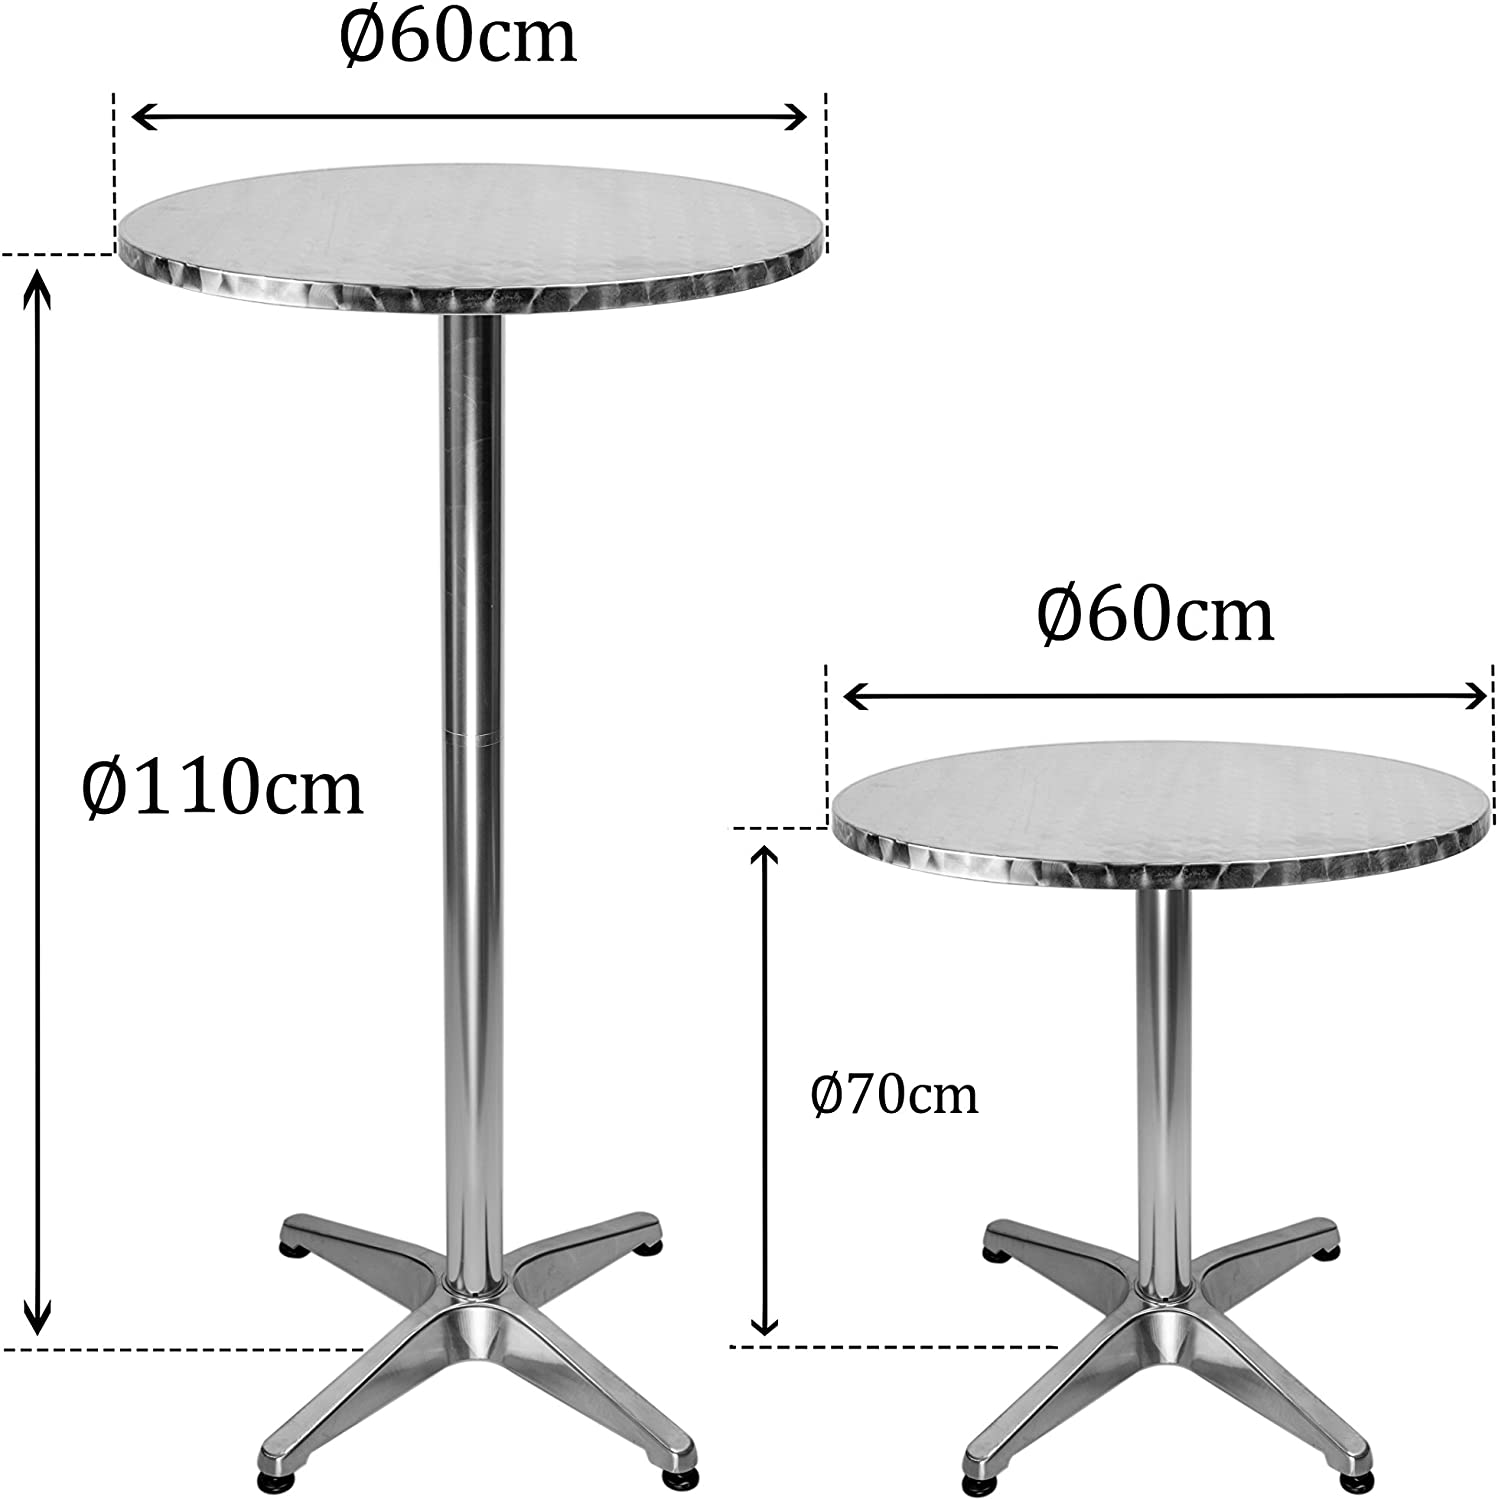 Lxdur Round Bistro Bar Table Aluminium Bar Table With 2 Adjustable Heights 24 Inches High Table Amazon Co Uk Kitchen Home